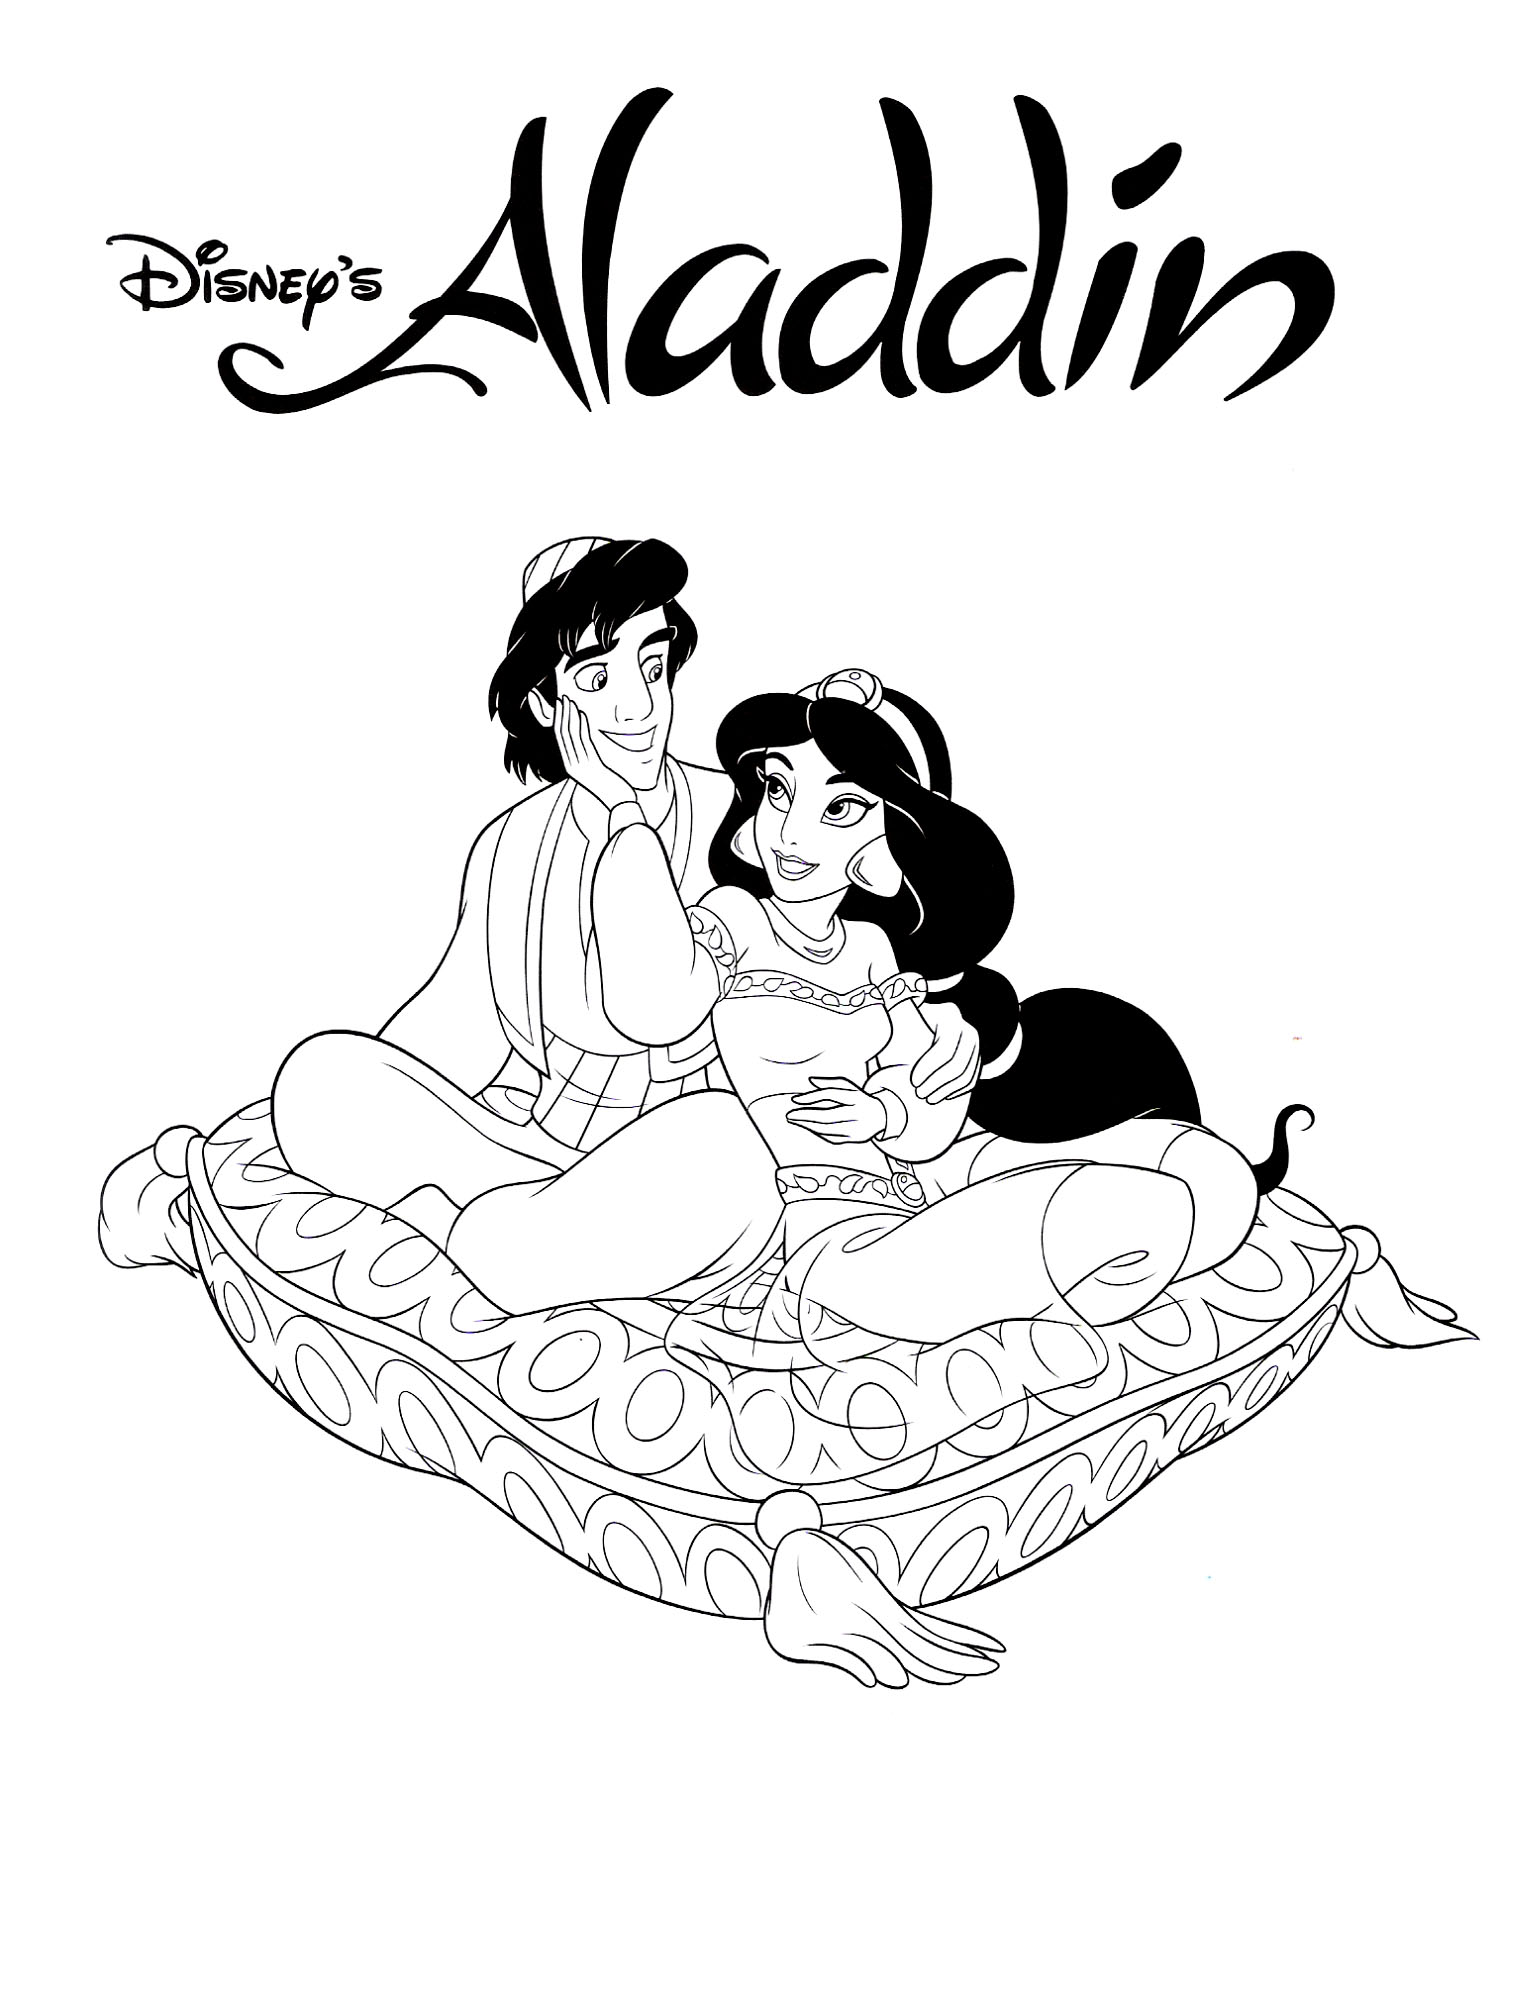 Princess jasmine colouring pages to print - Pr Princess Jasmine Coloring Pages Free Printable Aladdin Coloring Pages Me